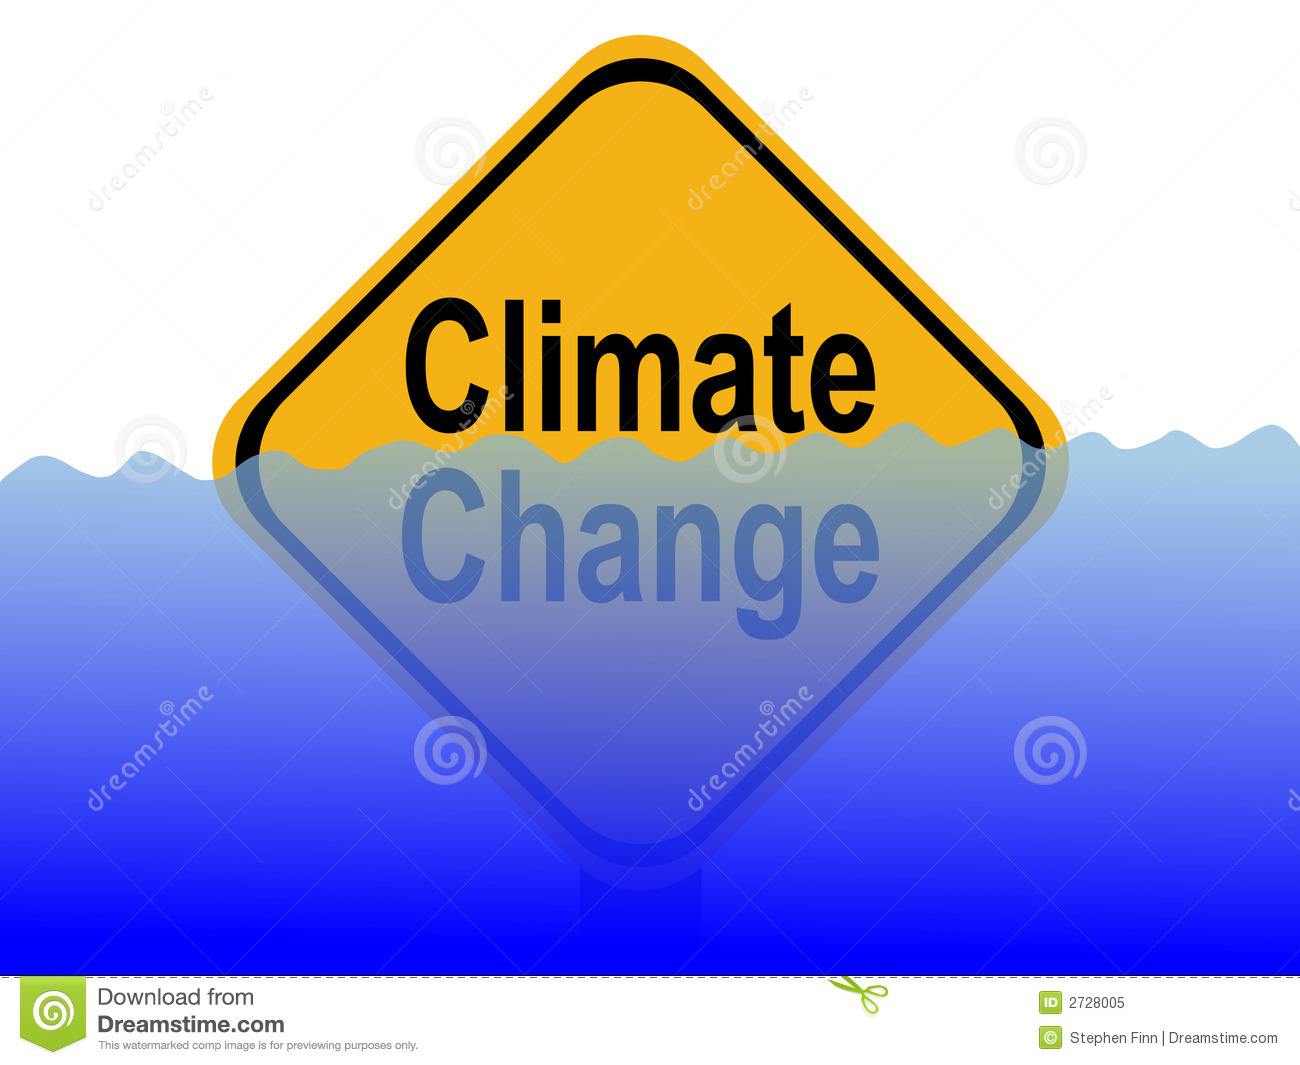 climate change images free climate change sign royalty free stock photo image 2728005 5677